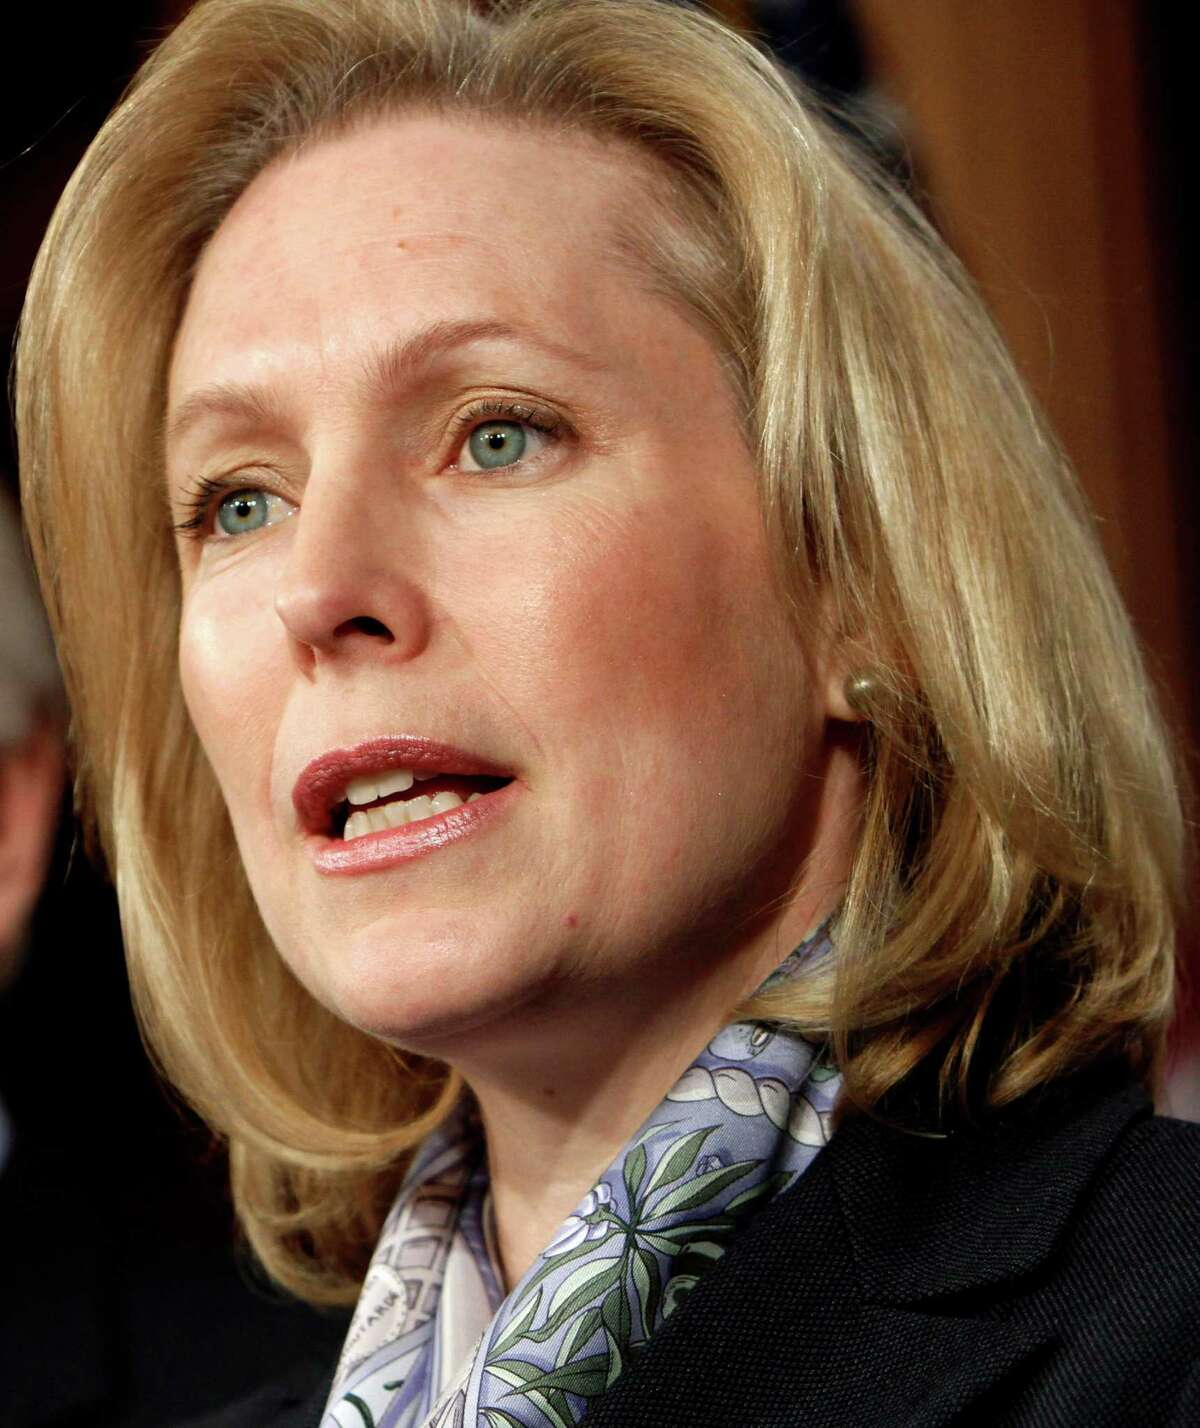 Sen. Kirsten Gillibrand, D-N.Y., right, accompanied by Sen. Joe Lieberman, I-Conn. speaks during a news conference on Capitol Hill in Washington, Tuesday, Jan. 31, 2012. U.S. Sens. Kirsten Gillibrand, D-N.Y., and Richard Blumenthal, D-Conn., will convene a federal hearing on Lyme disease at UConn Stamford Conn. on Thursday, Aug 30, 2012.